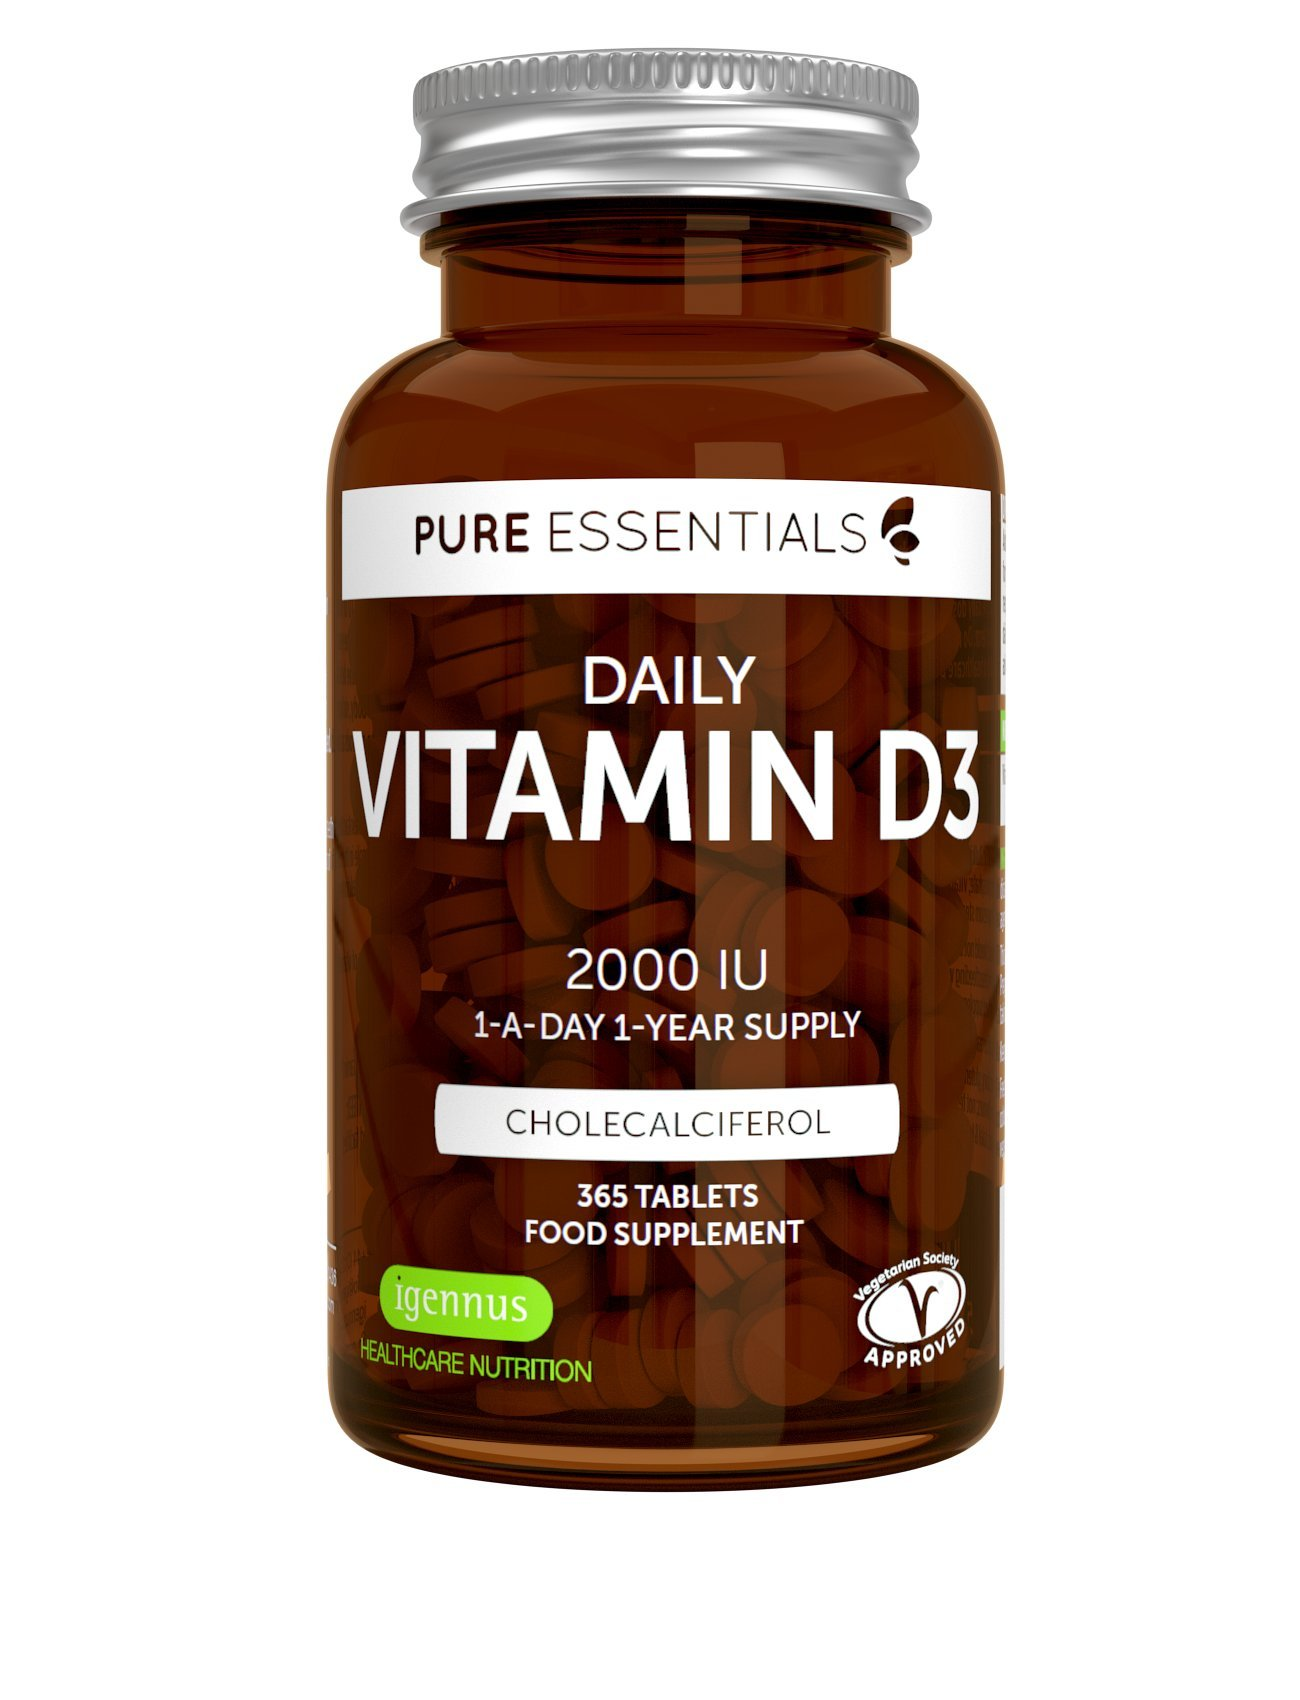 Pure Essentials Daily Vitamin D3 2000iu, 1-Year Supply, Vegetarian, 365 Small Tablets product image